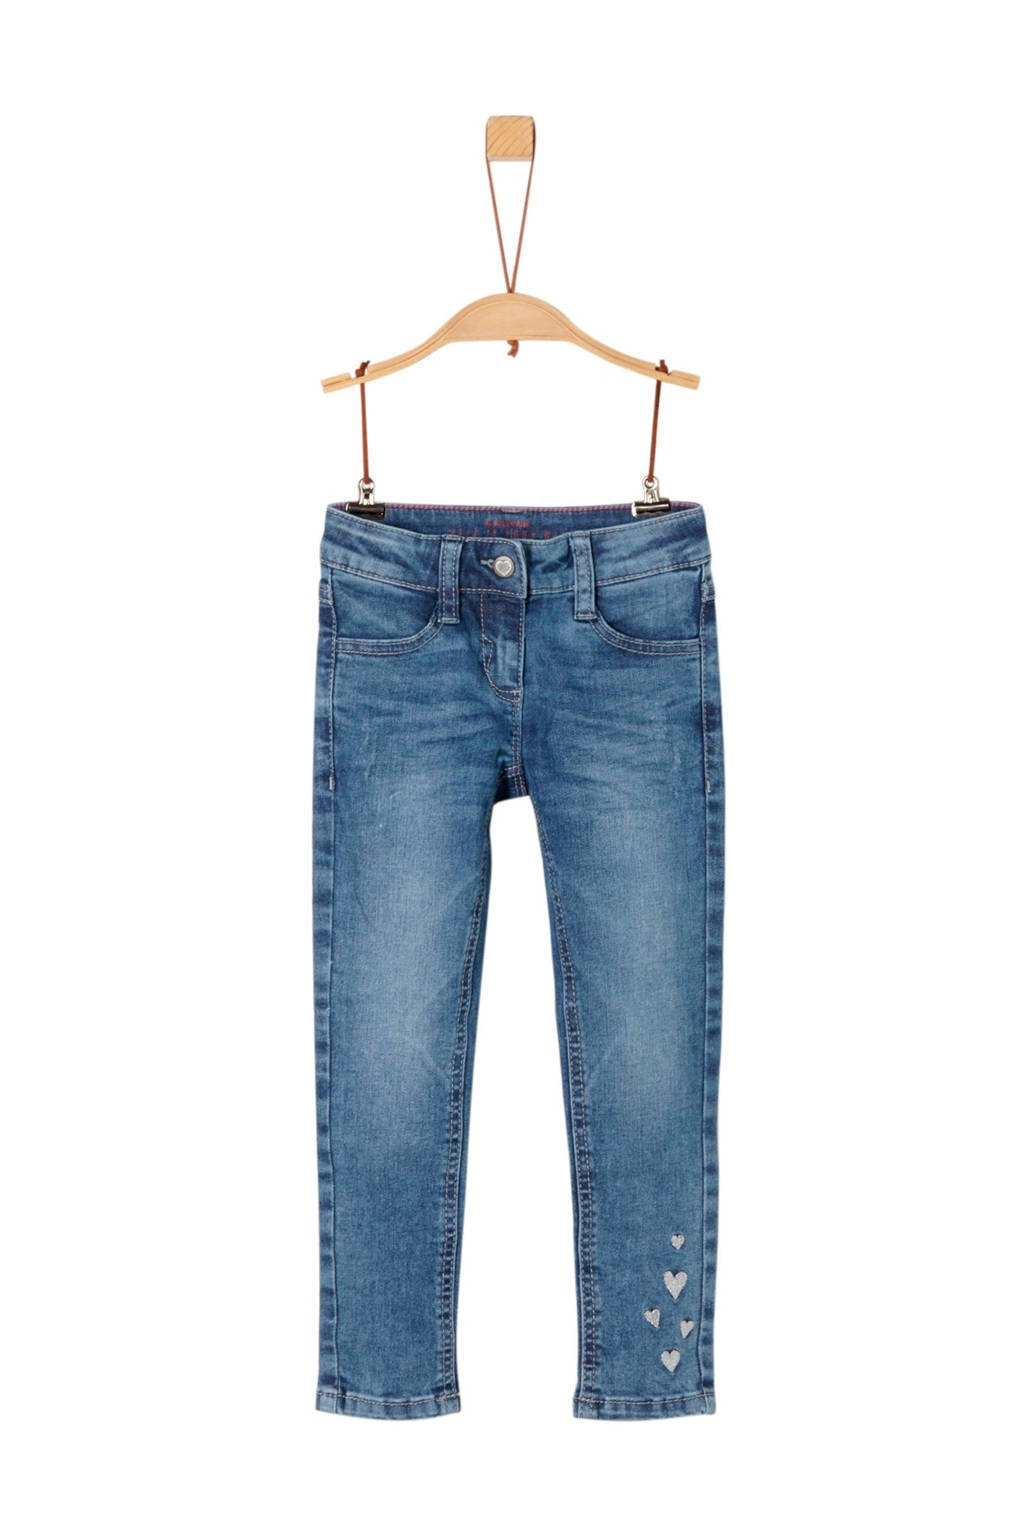 s.Oliver super skinny jeans met printopdruk en borduursels light denim, Light denim